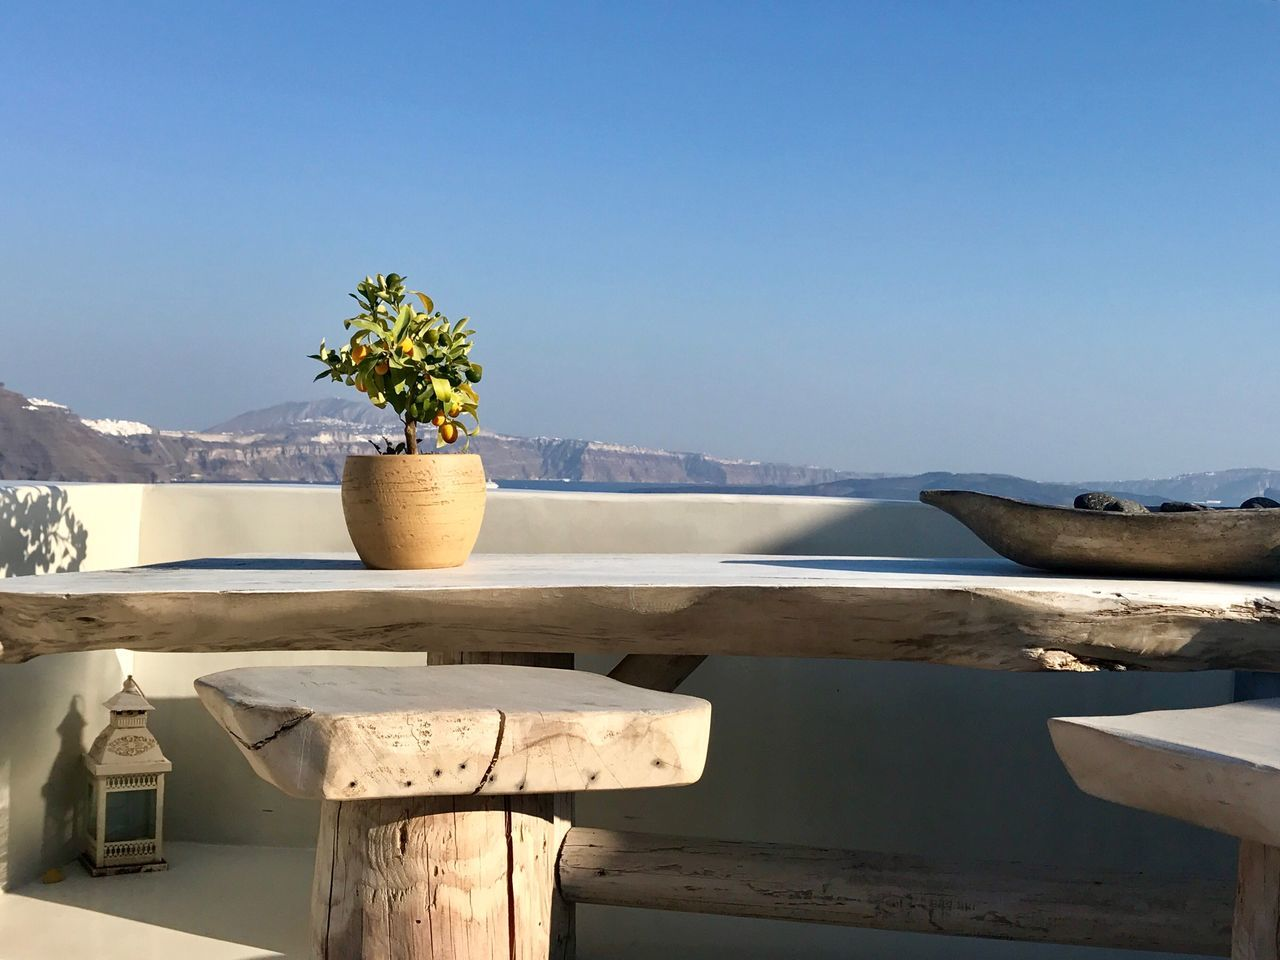 no people, nature, water, wood - material, day, sunlight, potted plant, outdoors, beauty in nature, tranquility, sea, flower, scenics, sky, clear sky, nautical vessel, close-up